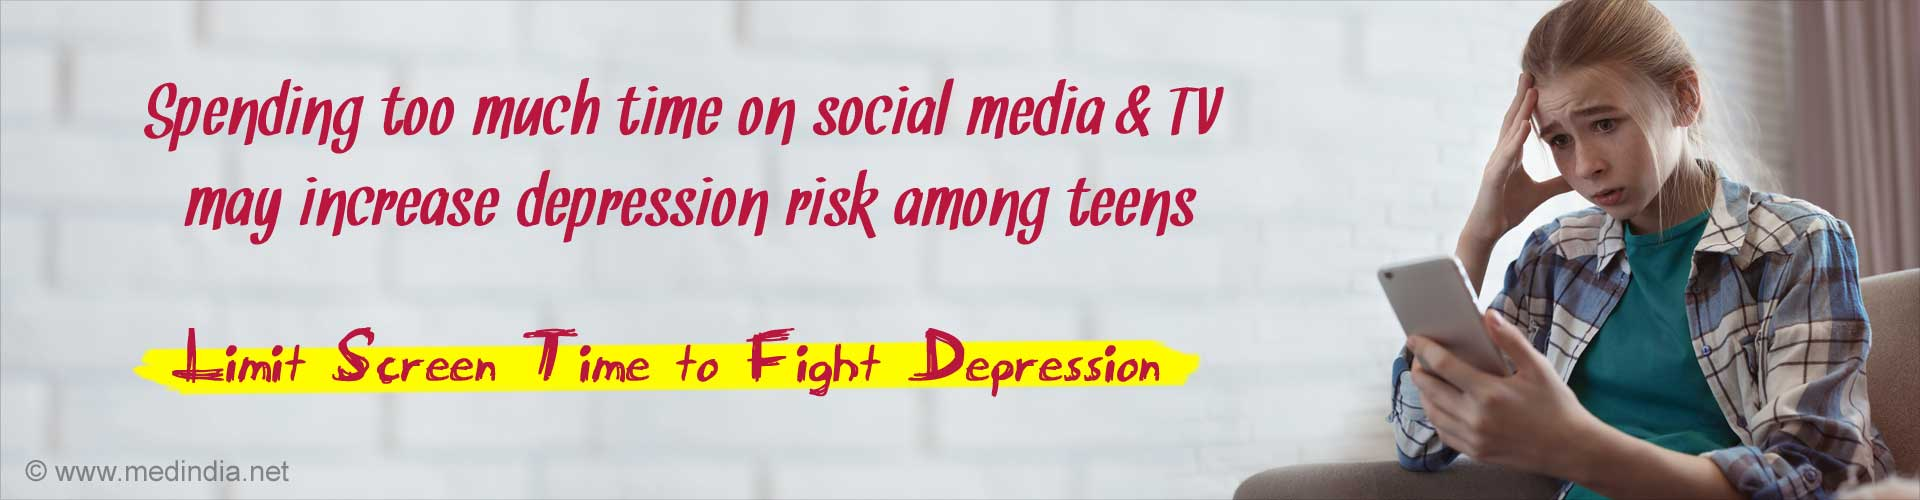 Spending too much time on social media and TV may increase depression risk among teens. Limit screen time to fight depression.